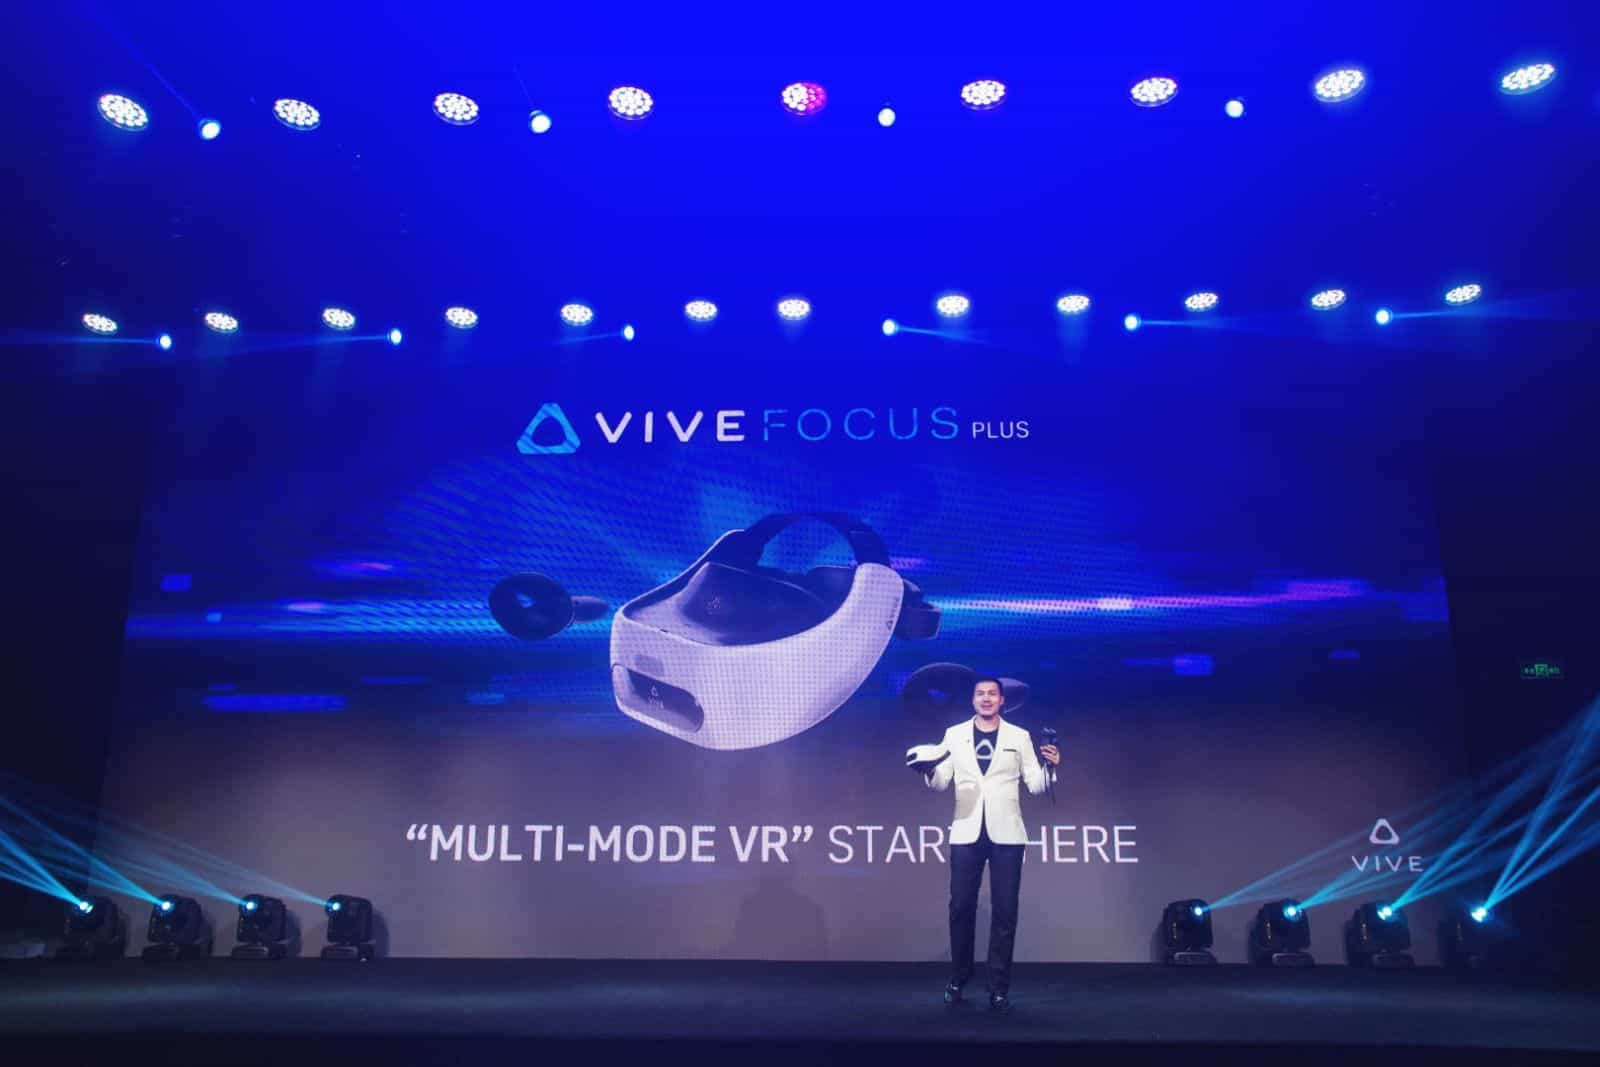 Vive Focus Plus 1